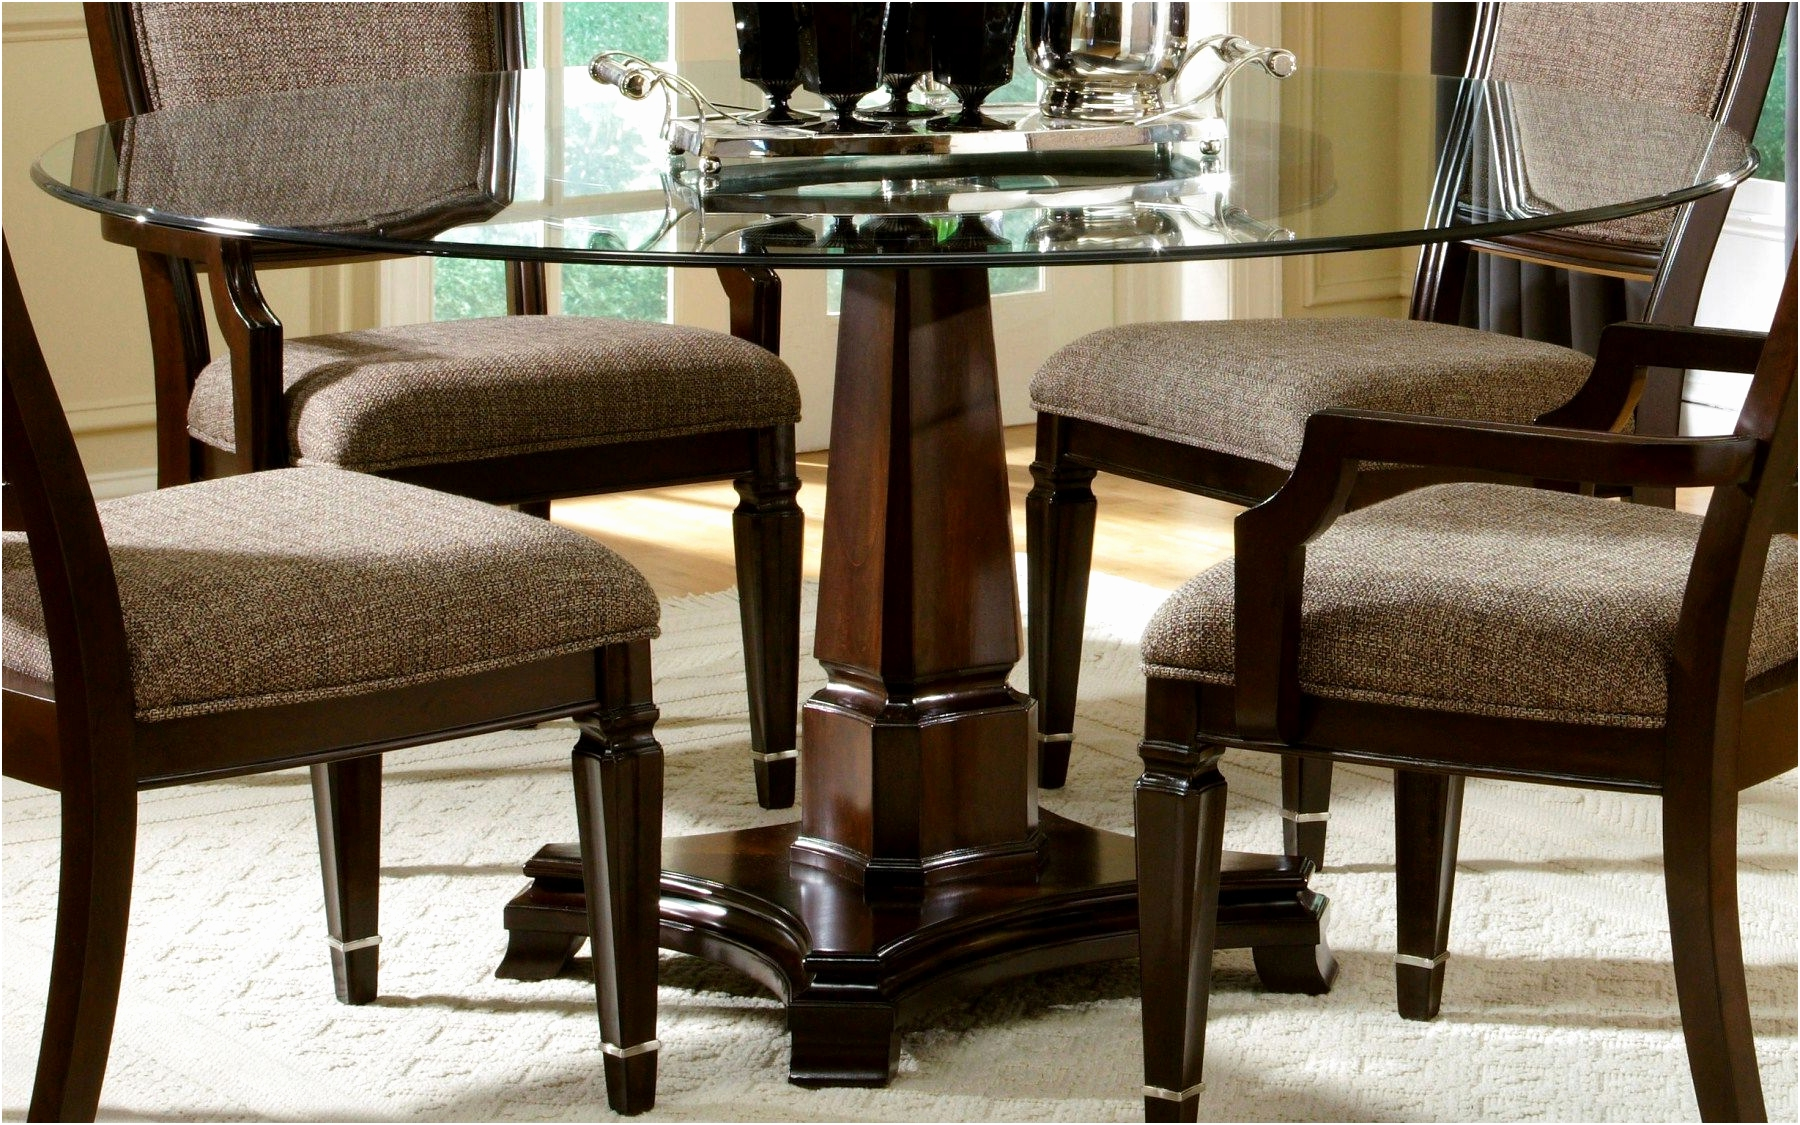 Kitchen Counter Chairs Cape Town: Square Dining Table Cape Town